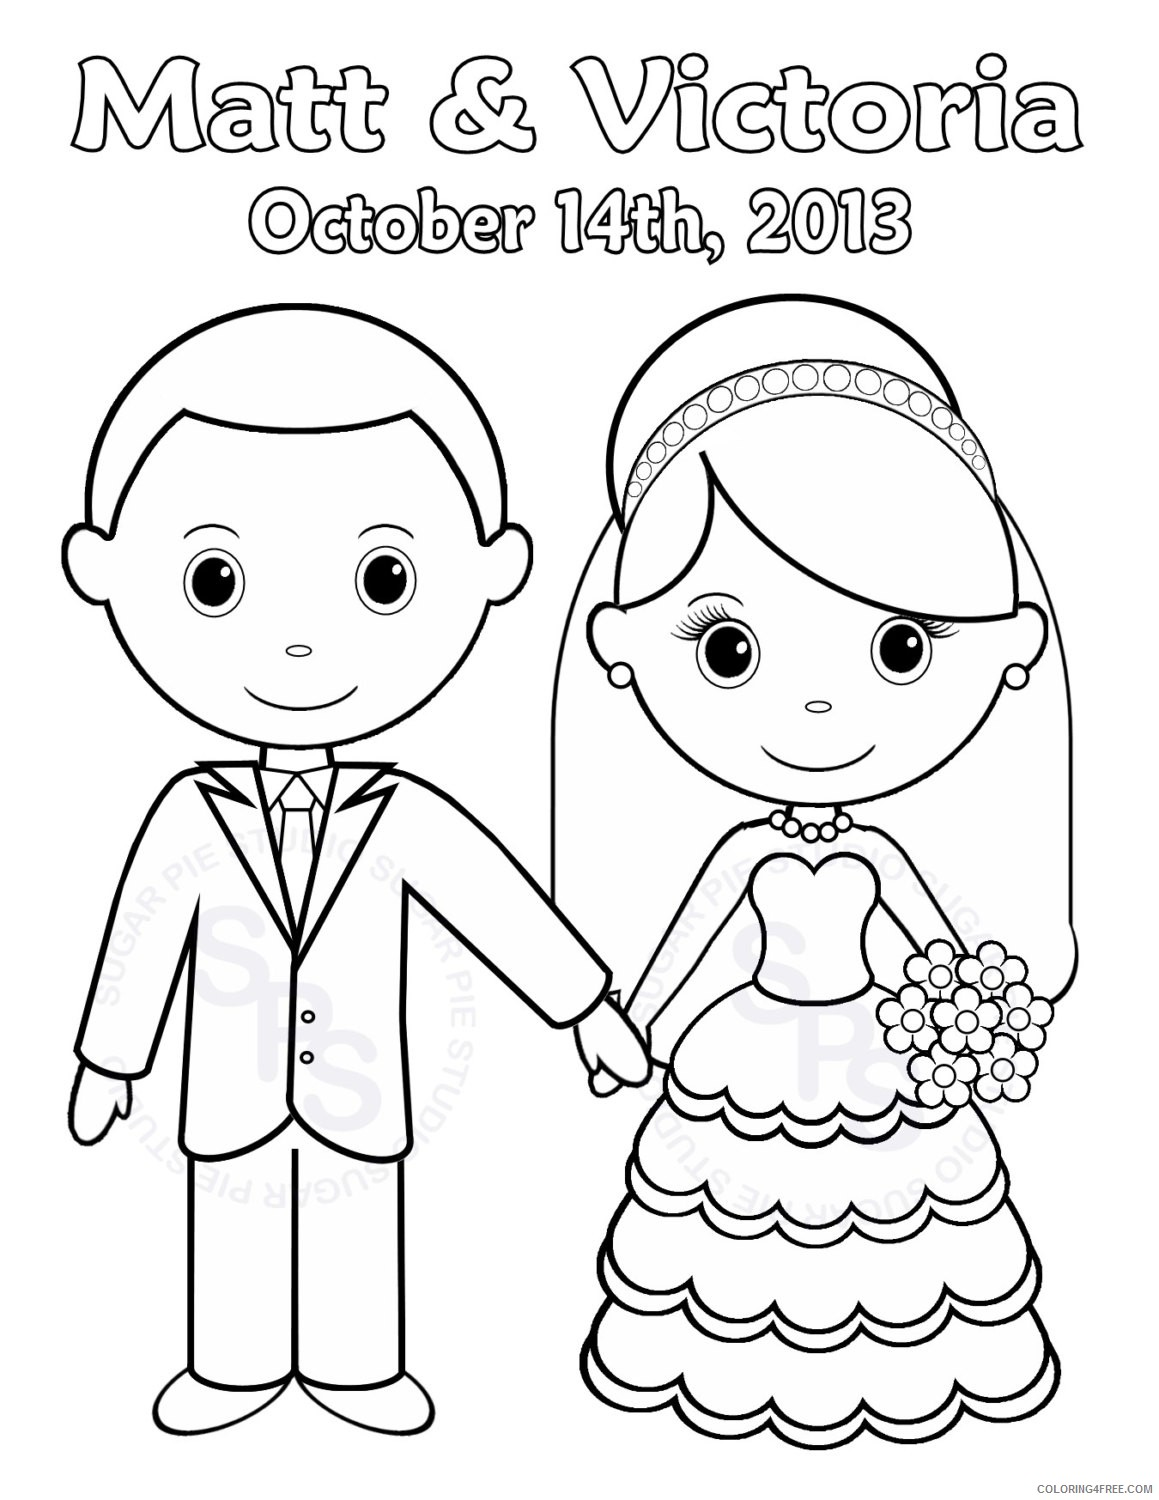 wedding coloring pages to print Coloring4free